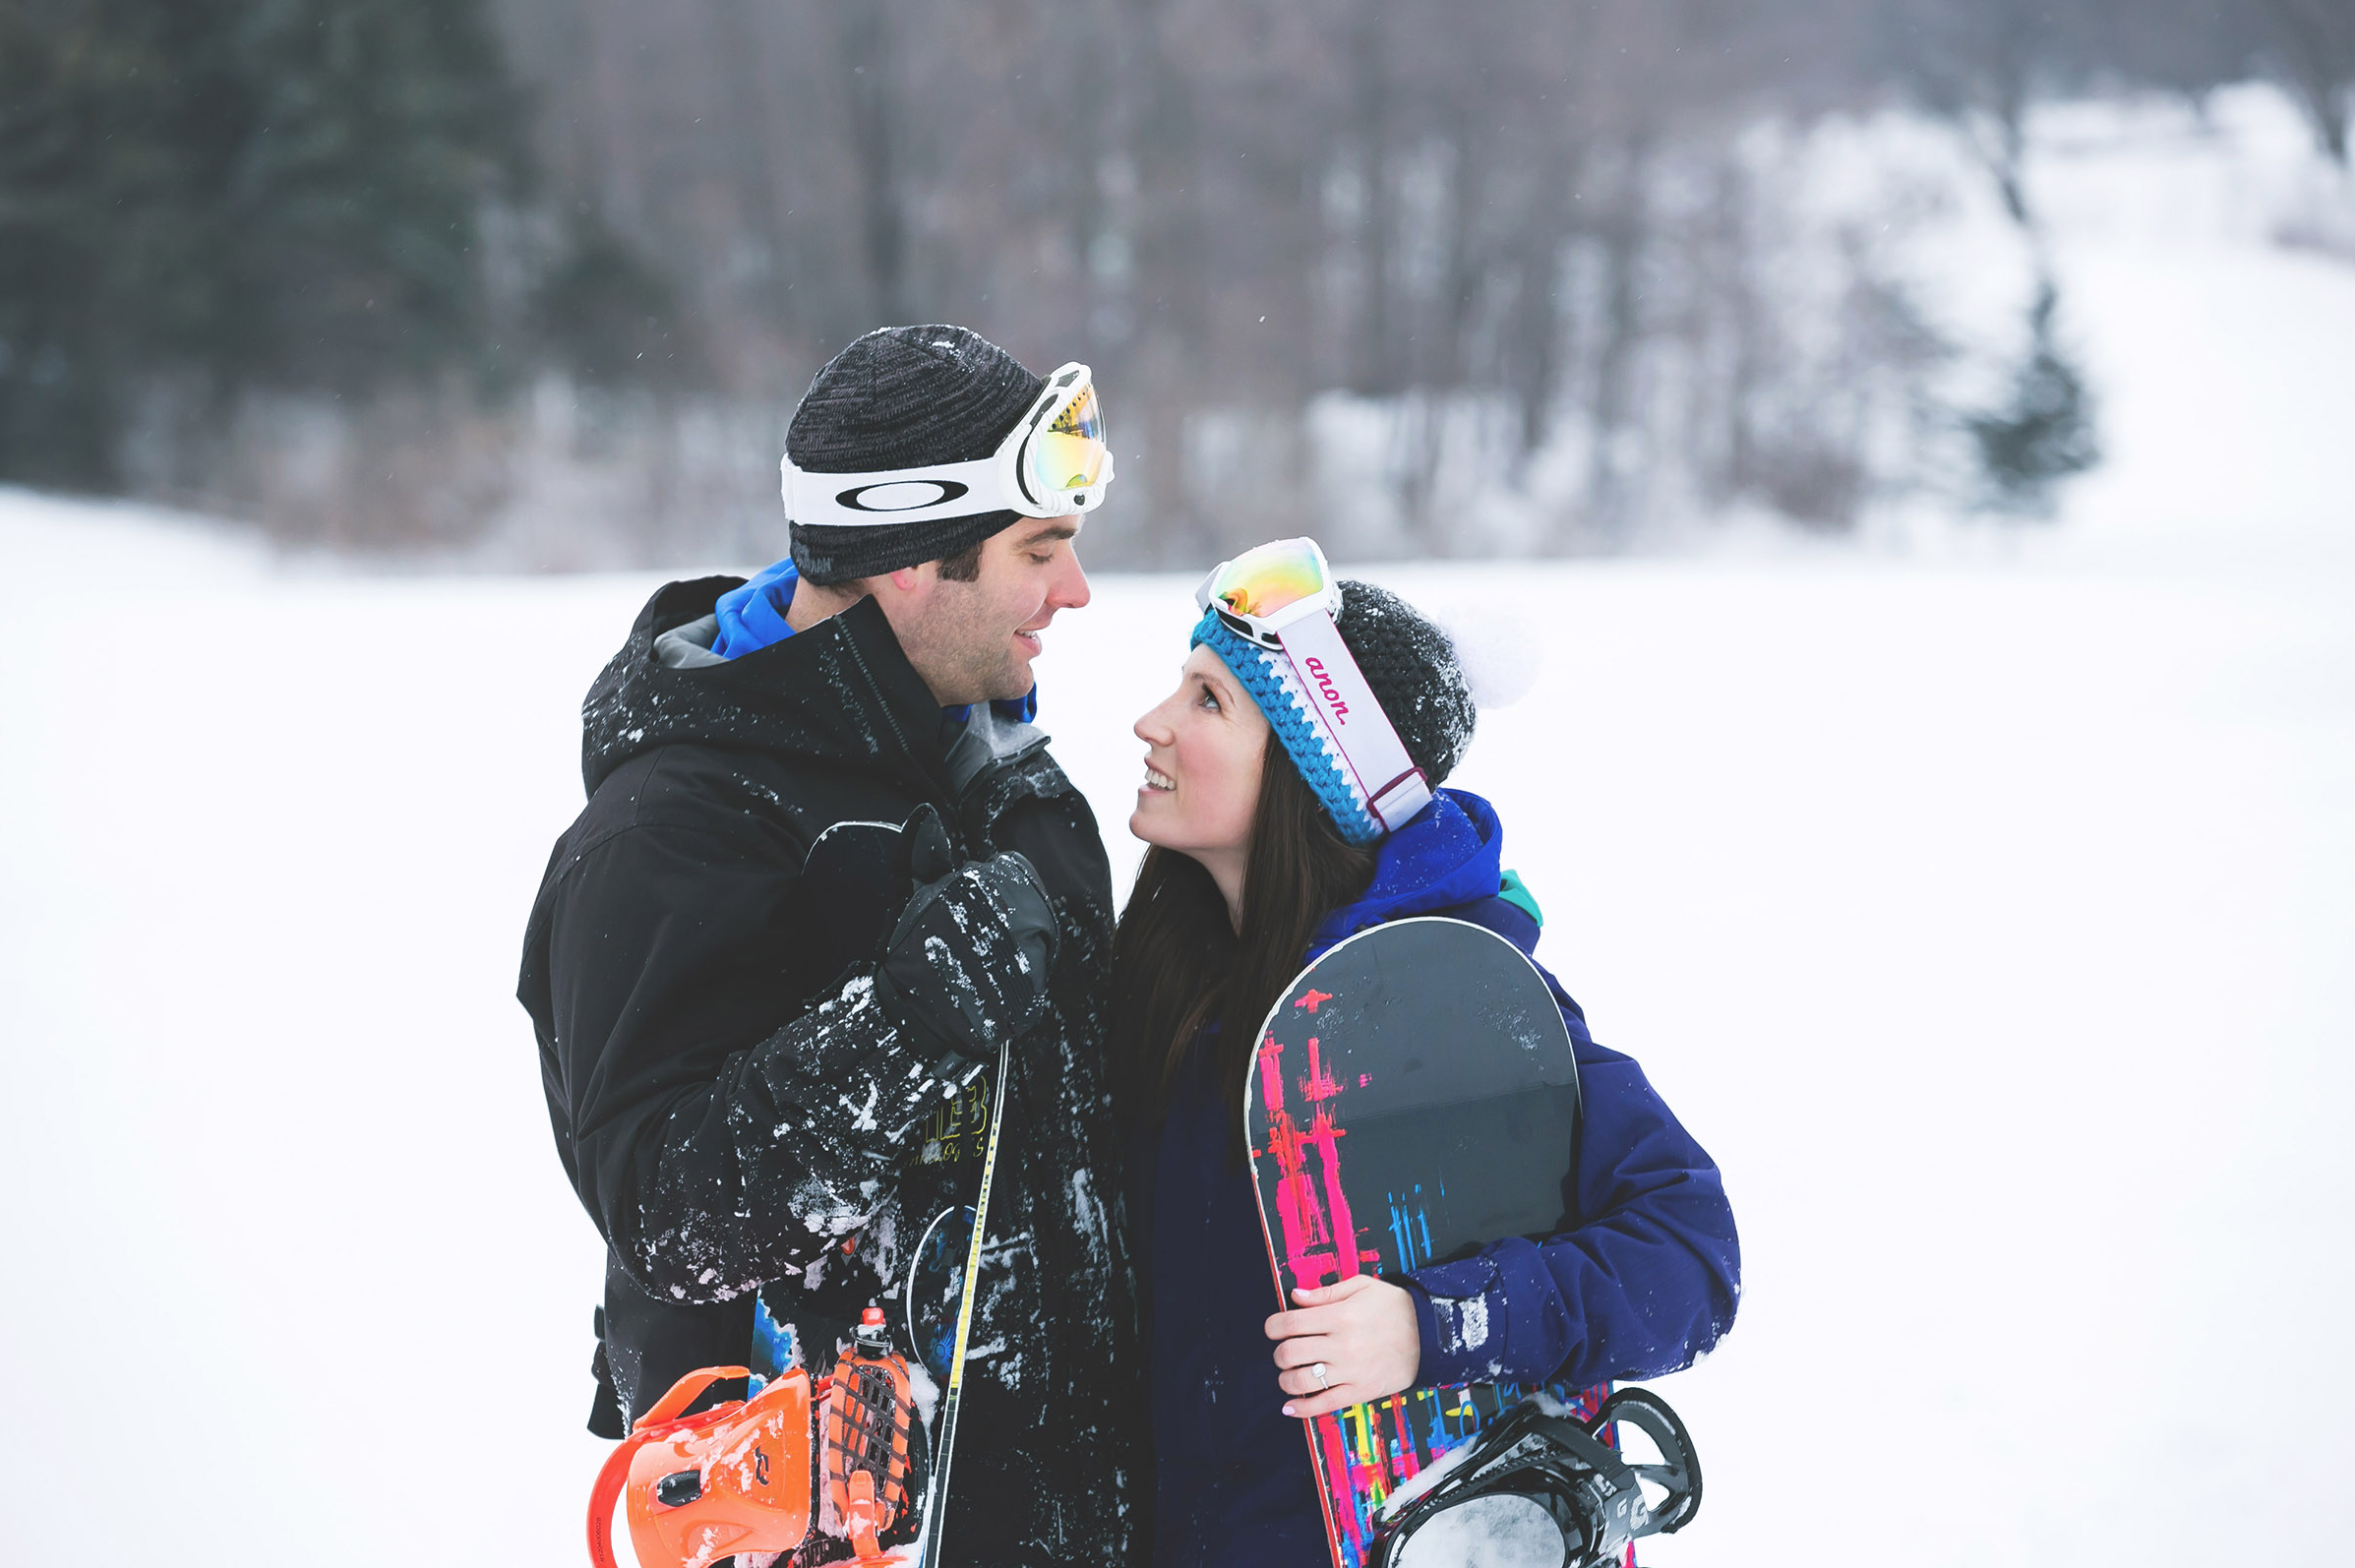 Engagement-Photos-Hamilton-Niagara-Toronto-Burlington-Oakville-Photographer-Engaged-Ring-Photography-Snowboarding-Winter-Moments-by-Lauren-Image-22.png